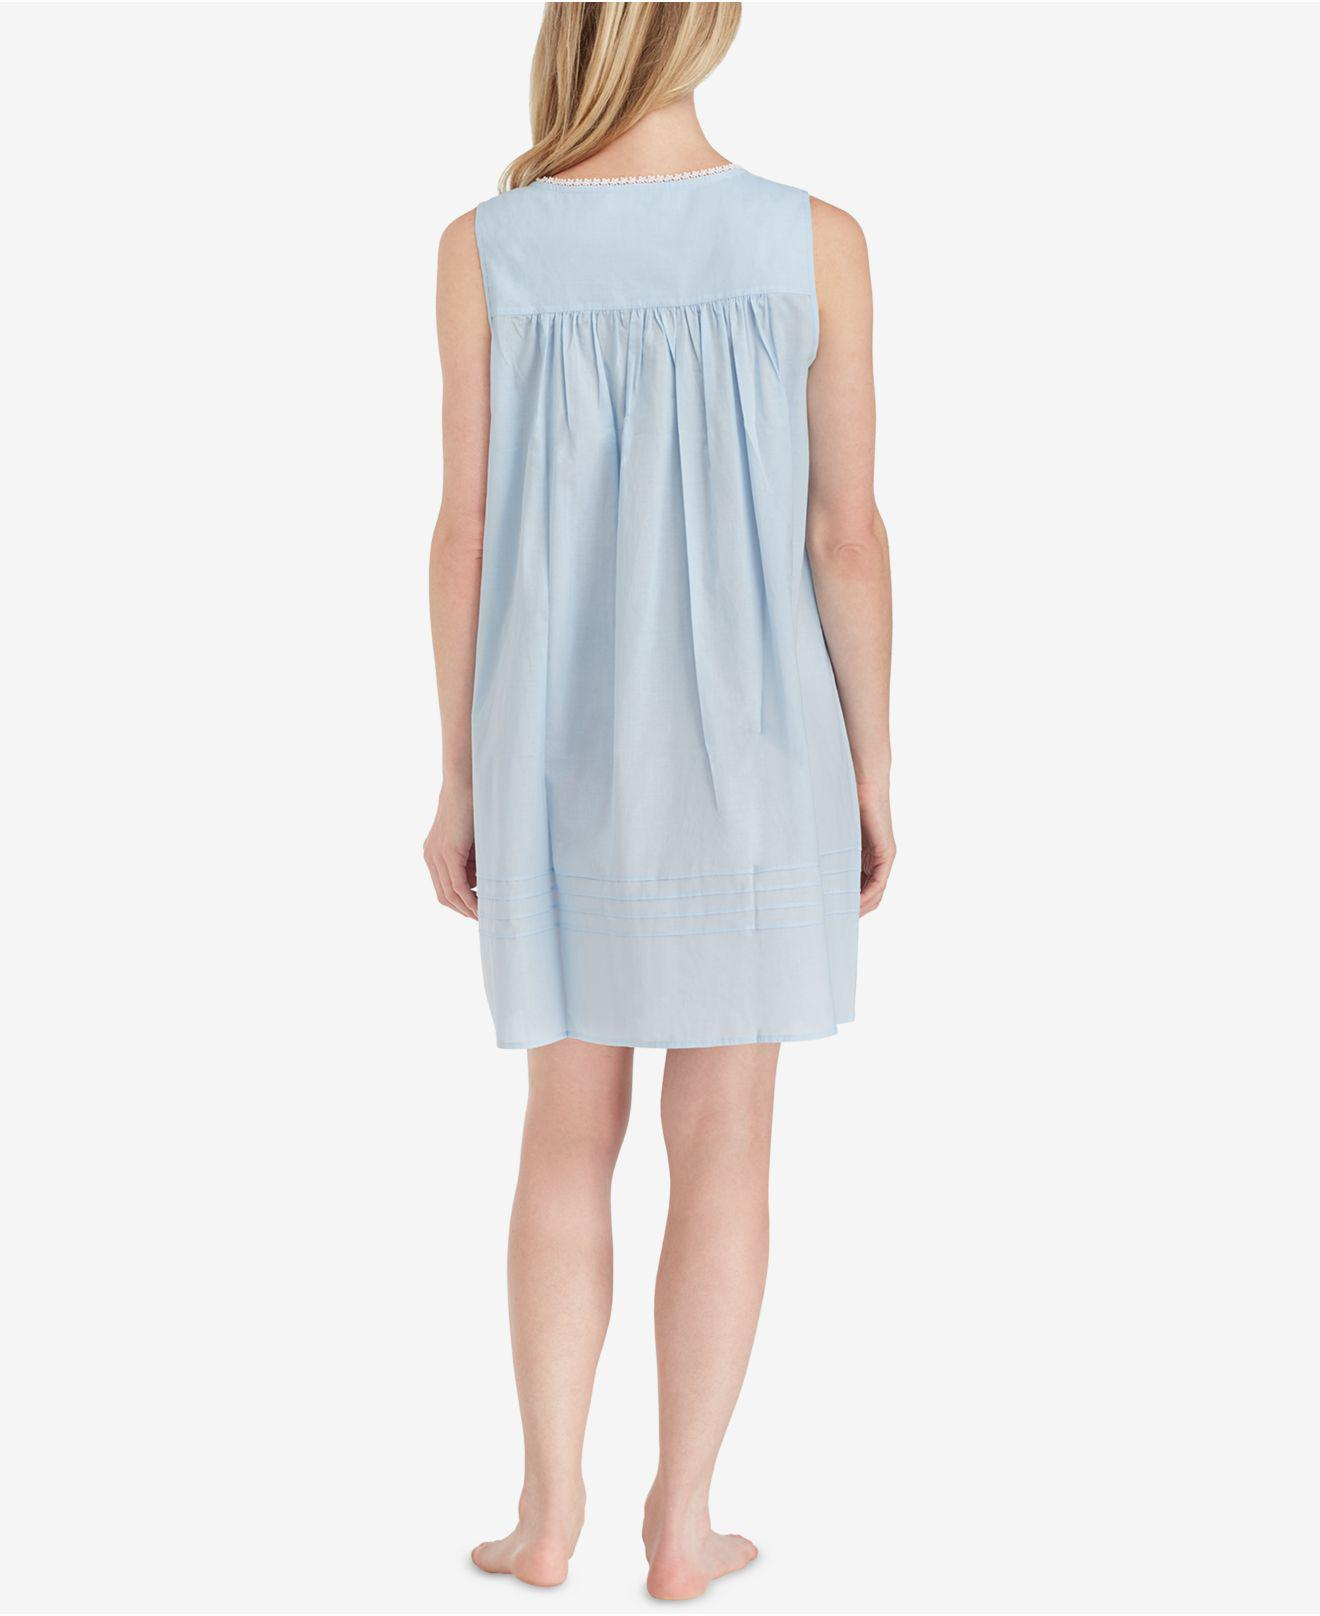 529487c564 Lyst - Eileen West Cotton Lace-trim Short Nightgown in Blue